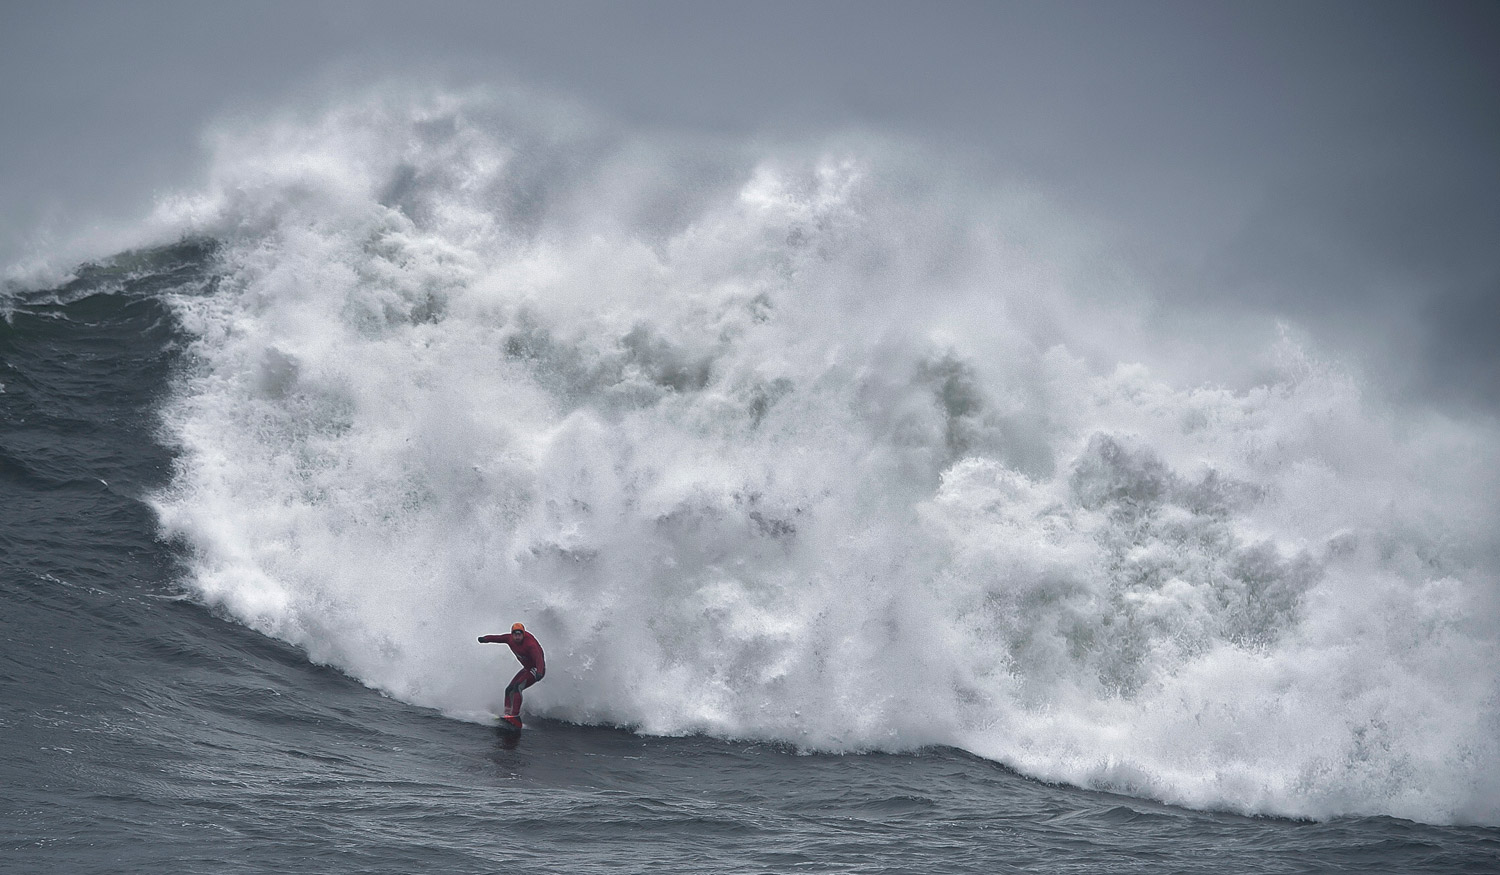 Al surfing Area 70. Pic by     Charles McQuillan